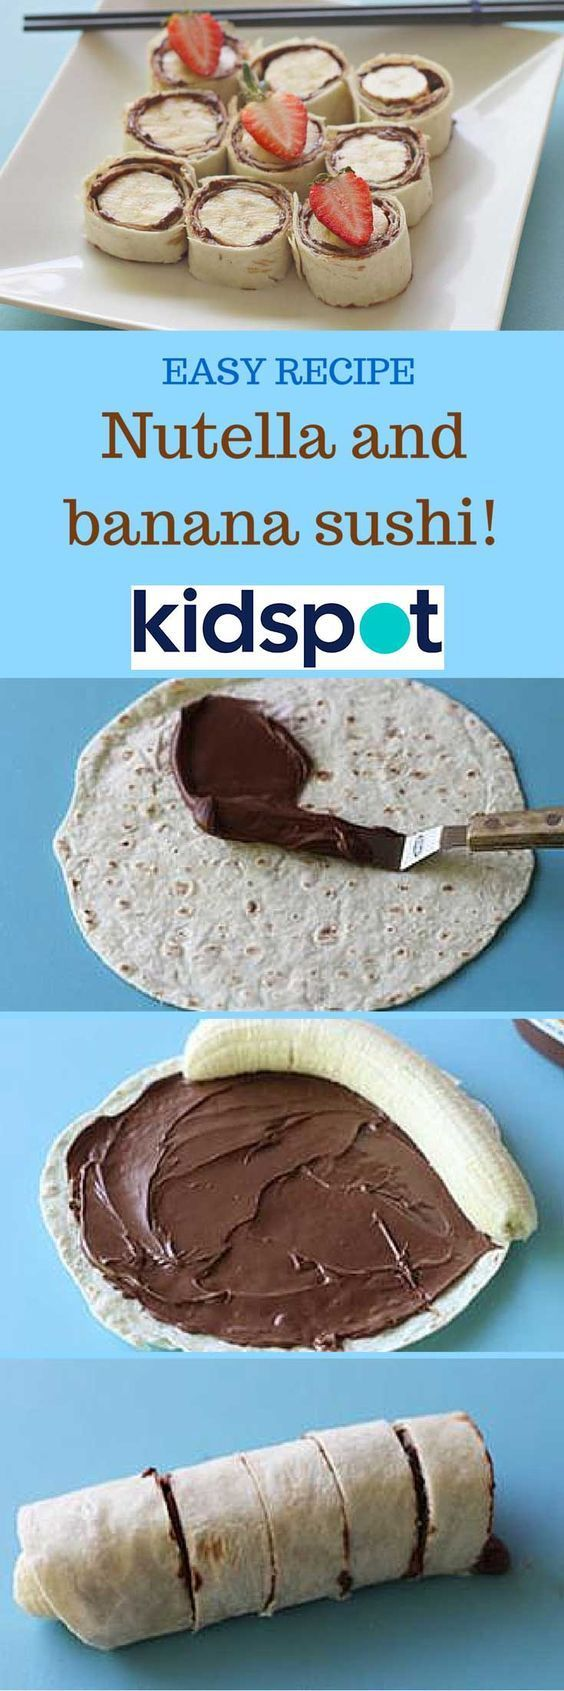 YUM! Find out how to make this super-easy lunch box or after-school snack now.